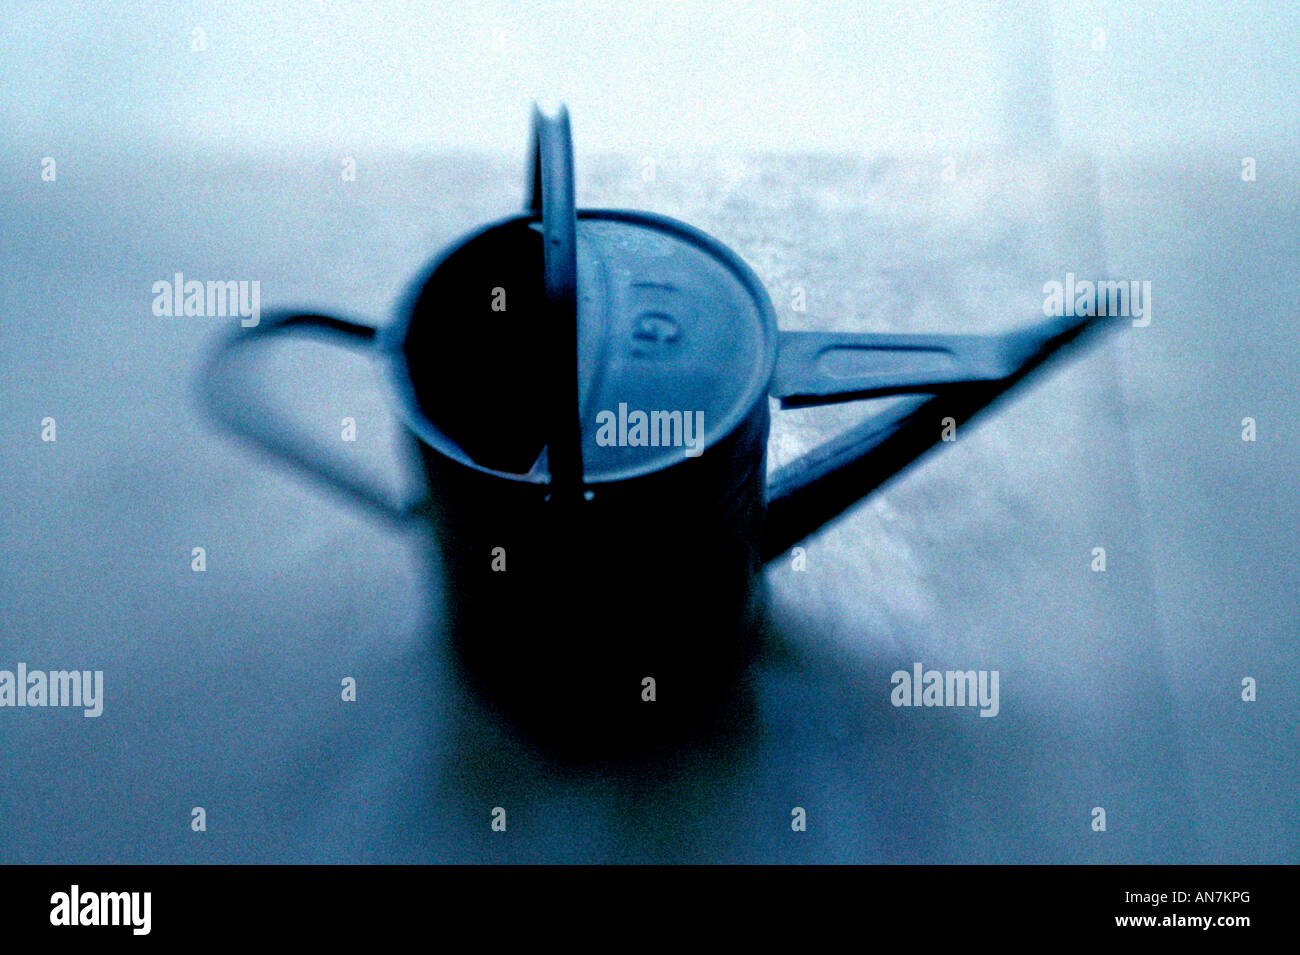 traditional galvanised steel watering can blue tone and blurry holds 1 gallon - Stock Image